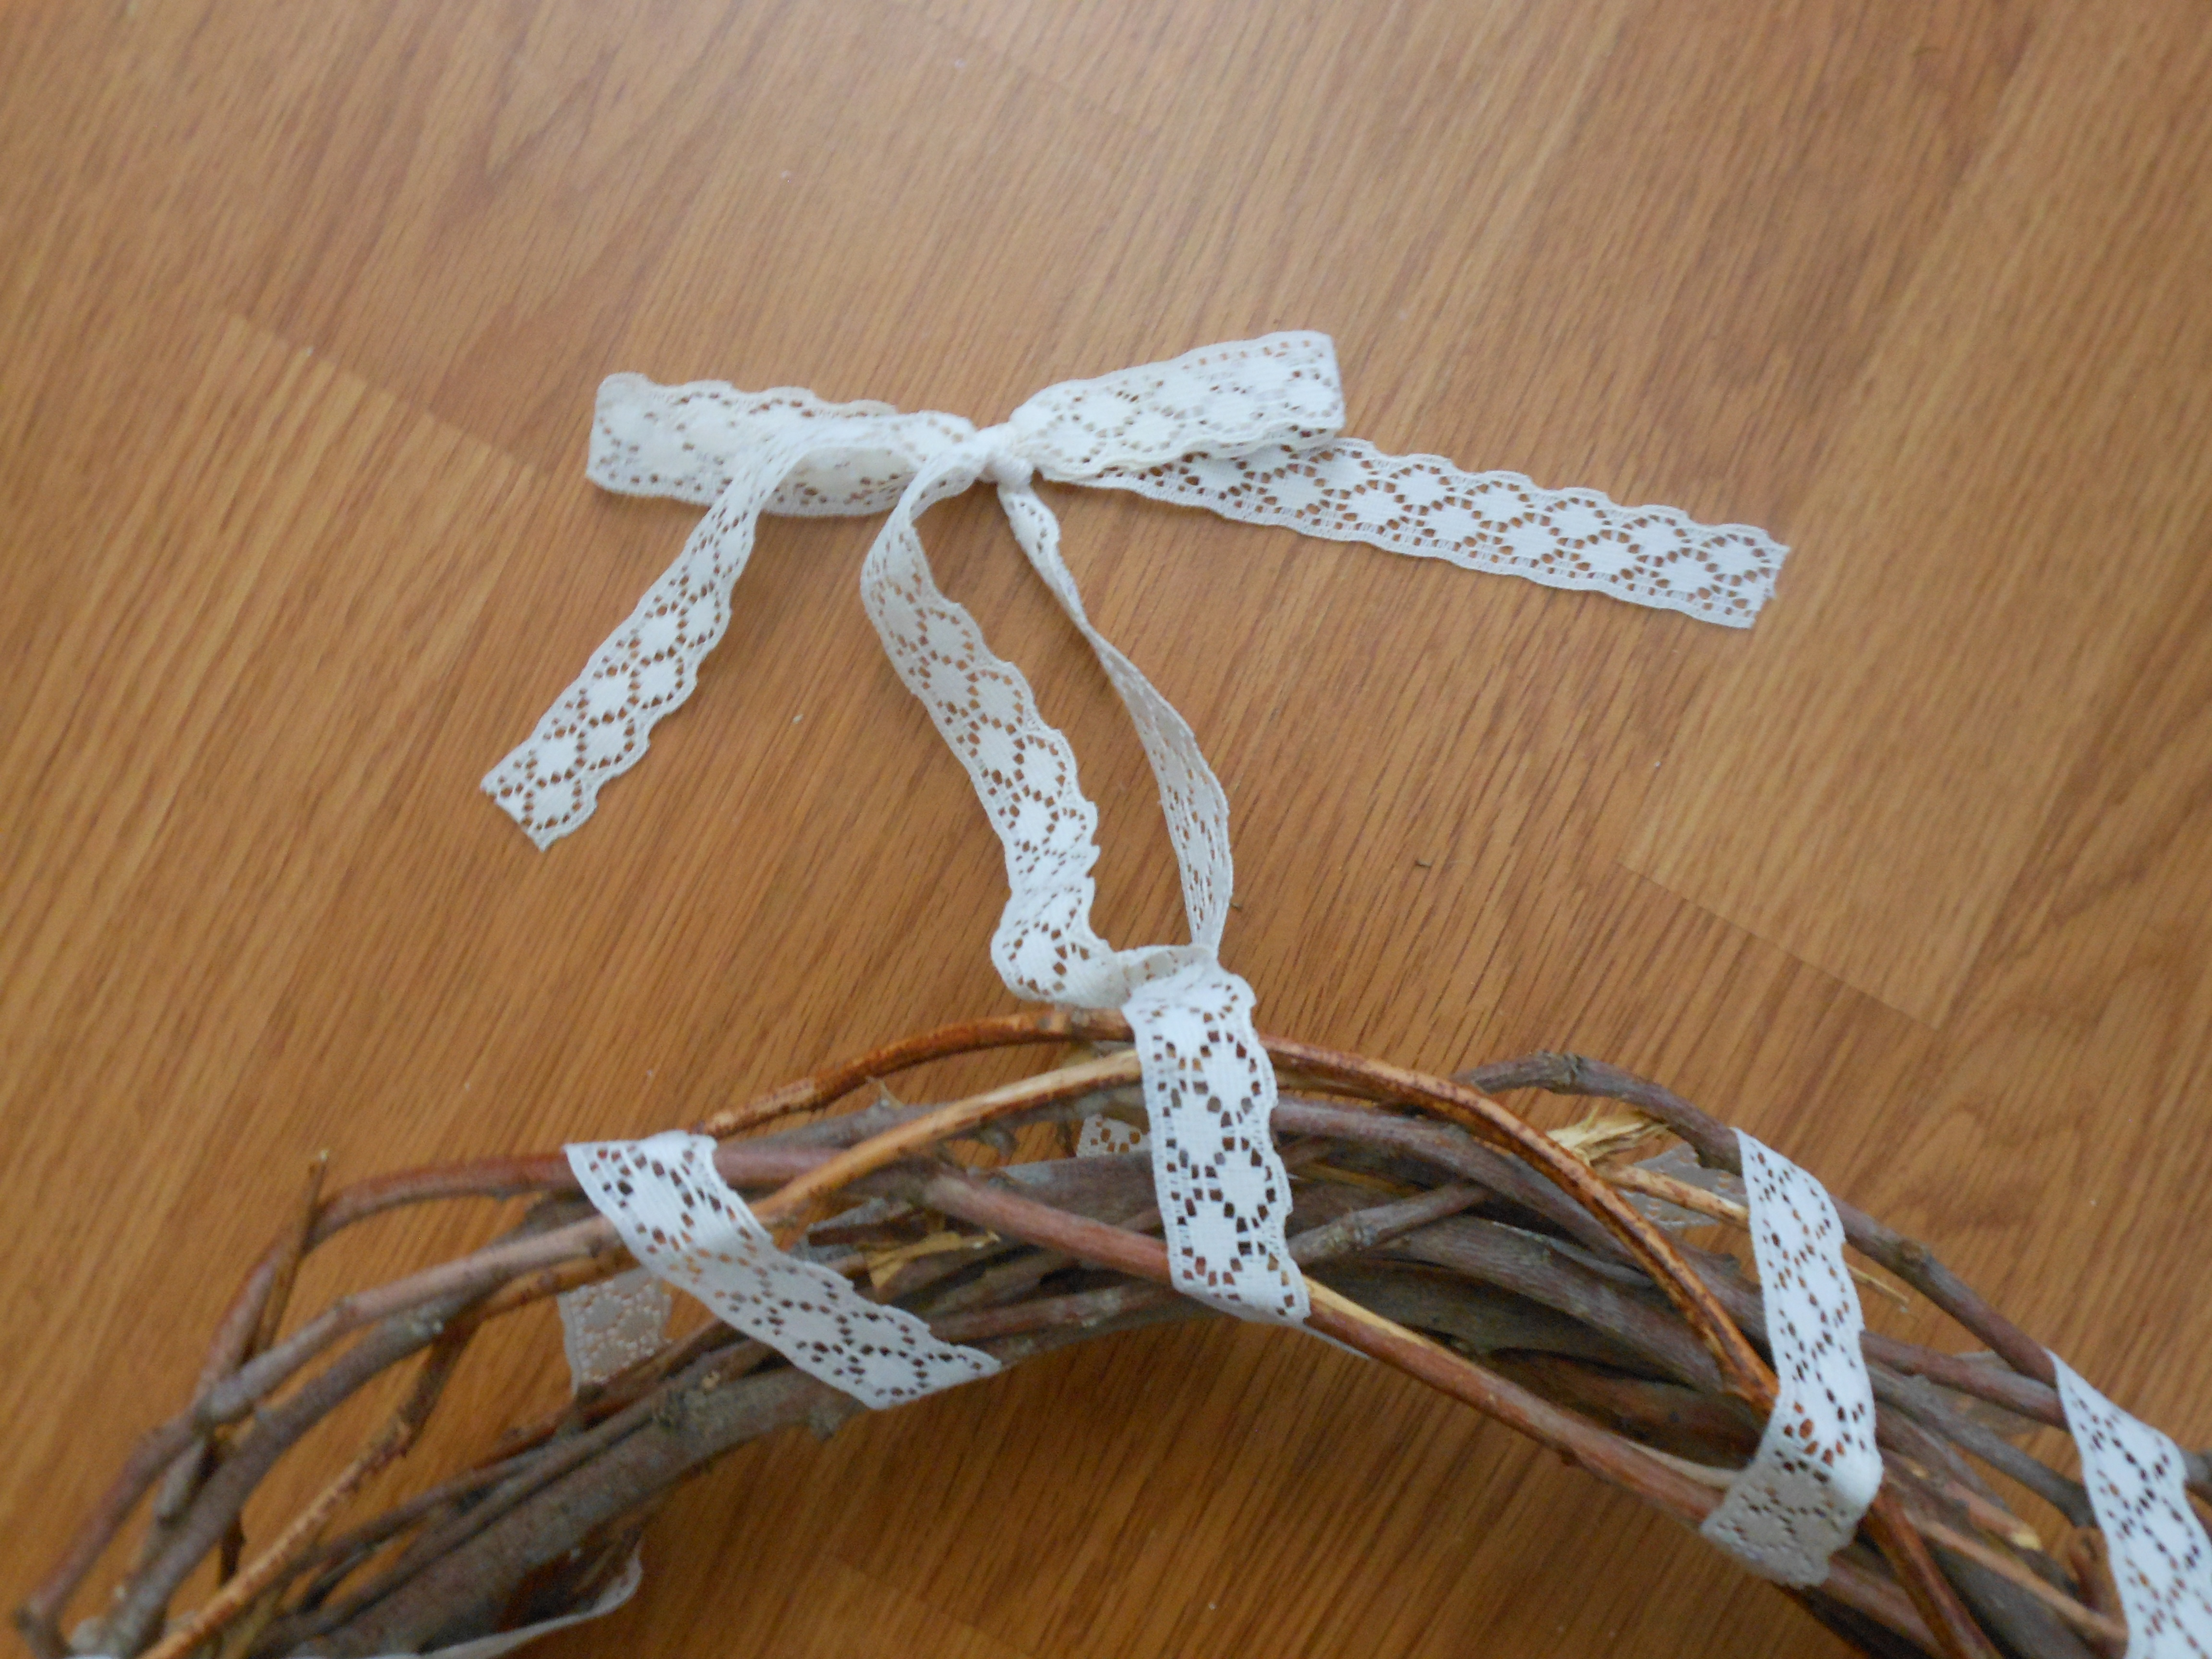 Extra ribbon for hanging the wreath